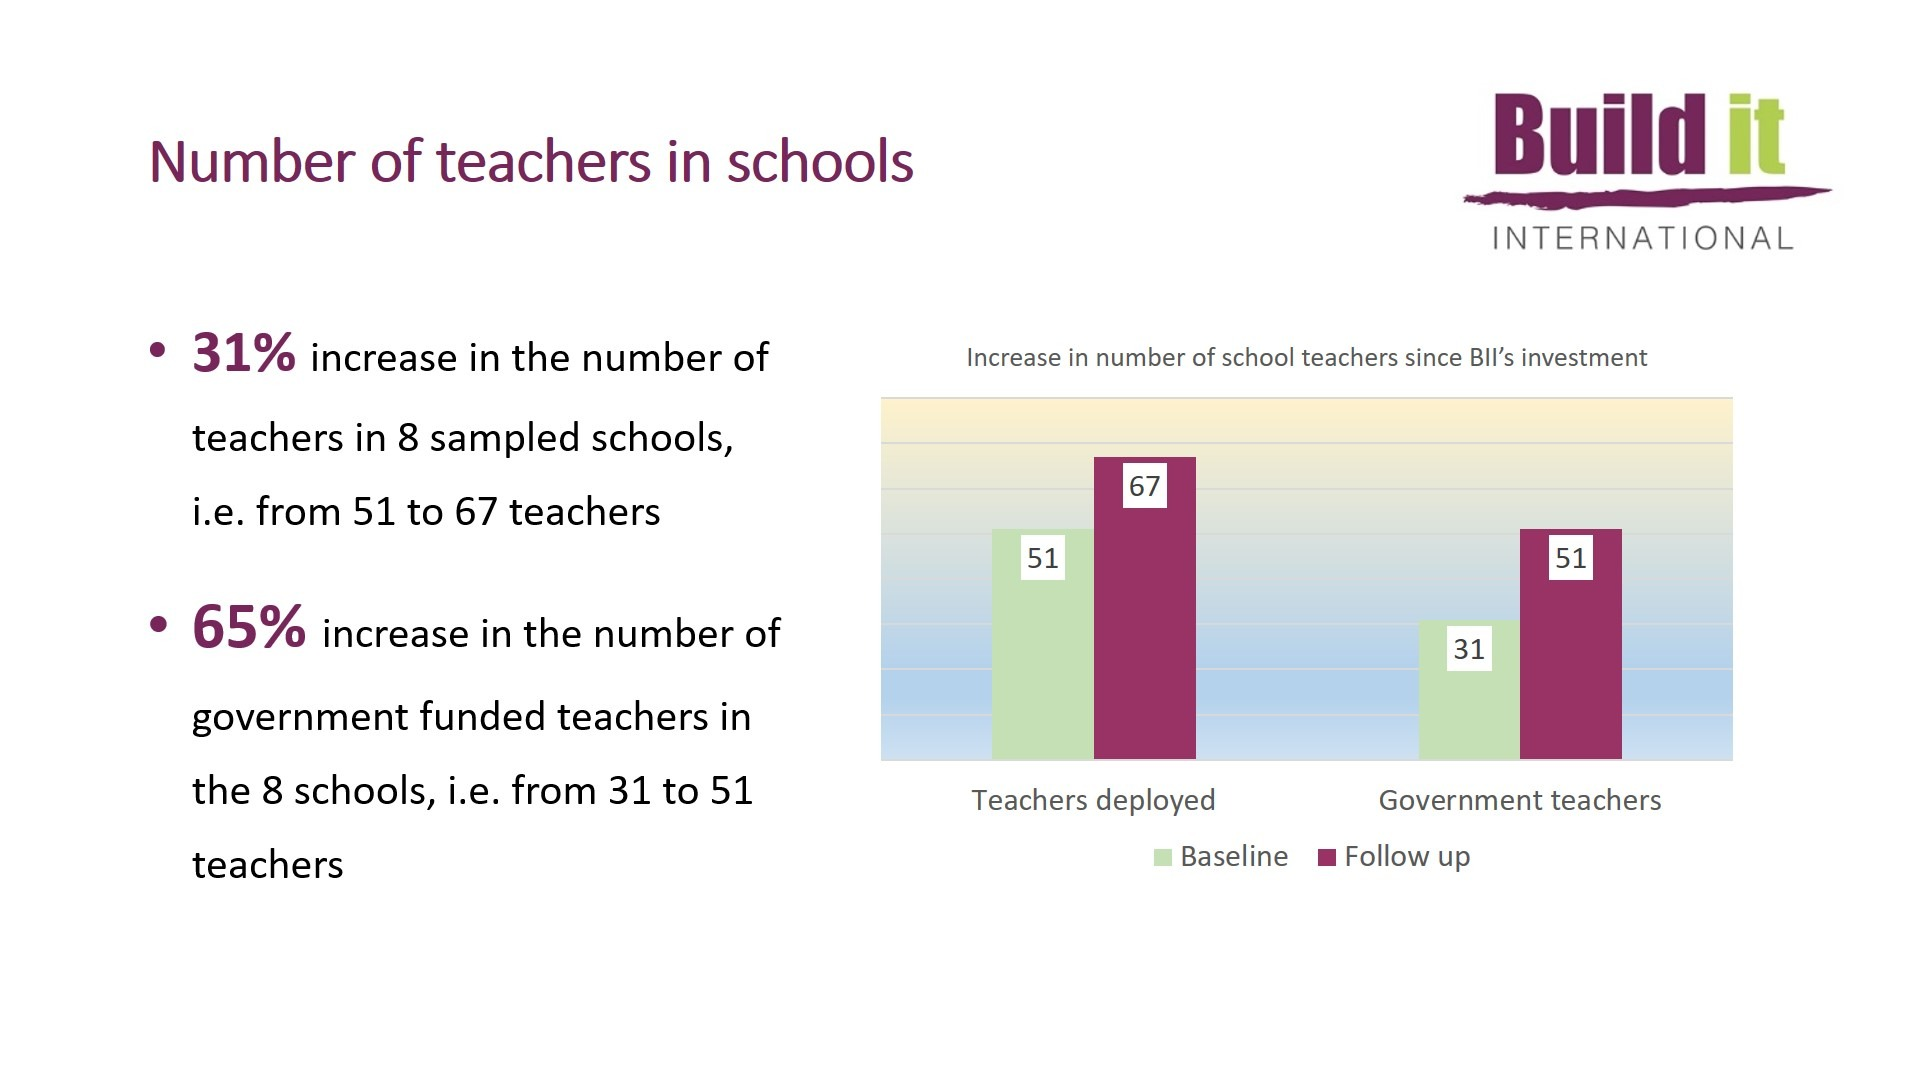 Graph showing number of teachers in schools - 2020 Impact Study